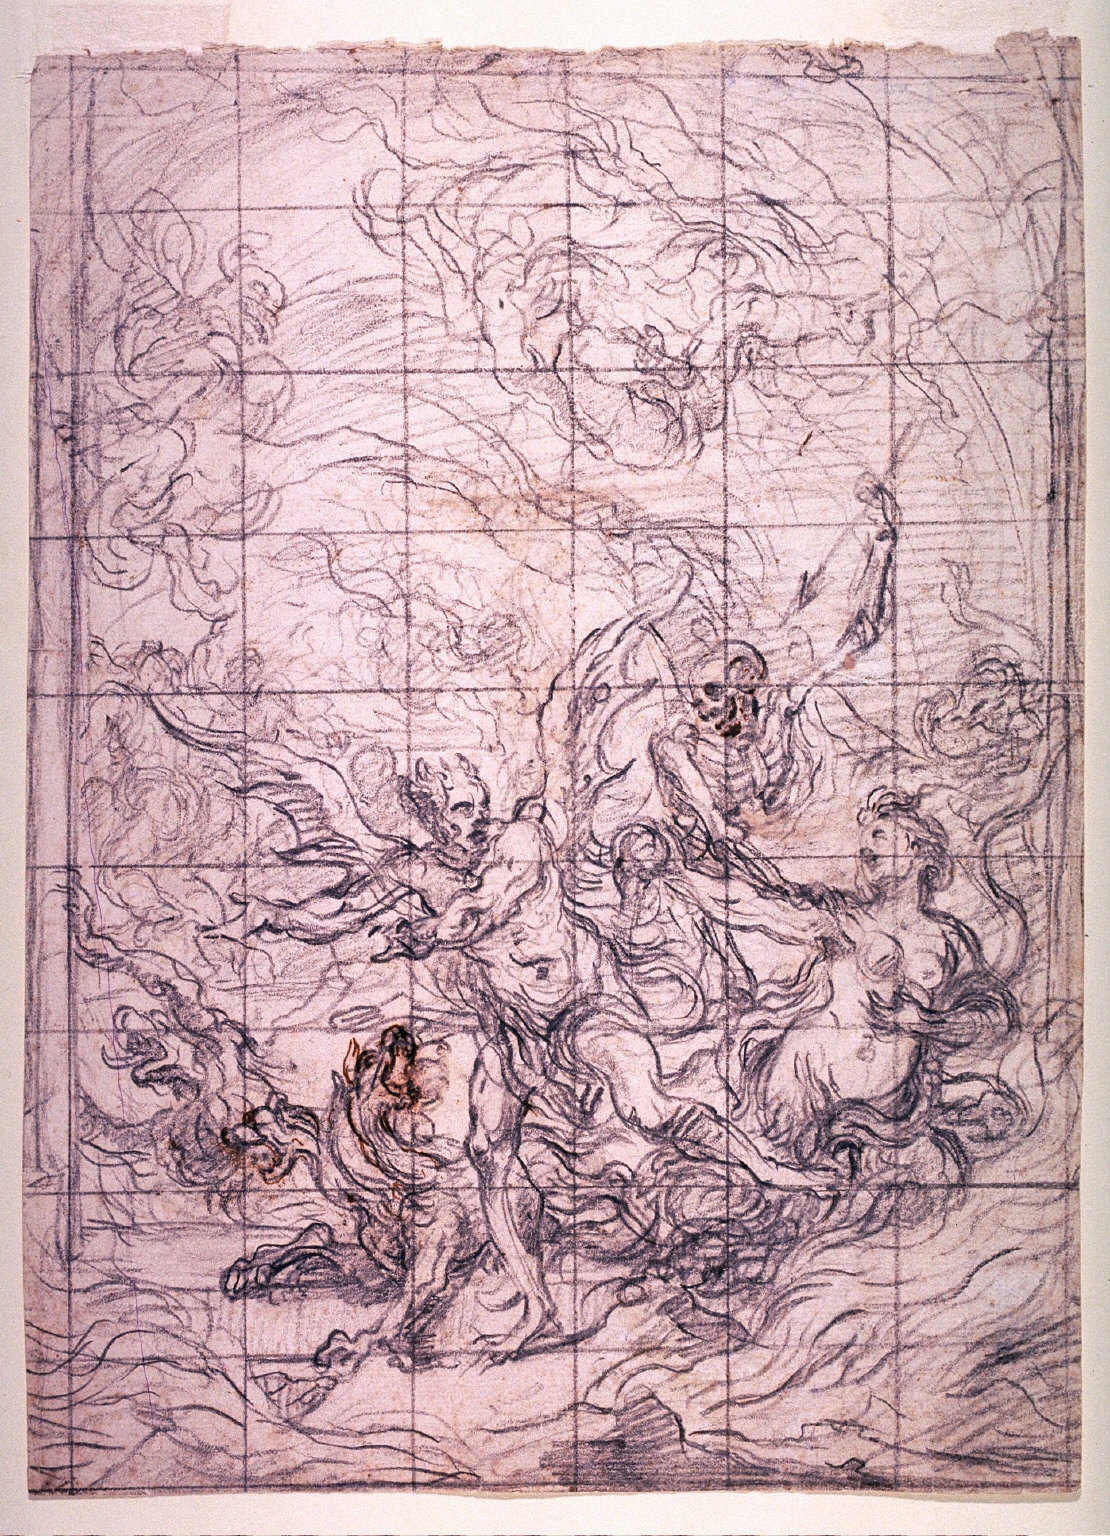 Satan at the Gate of Hell with Sin and Death, a study for the painting The Gates of Hell